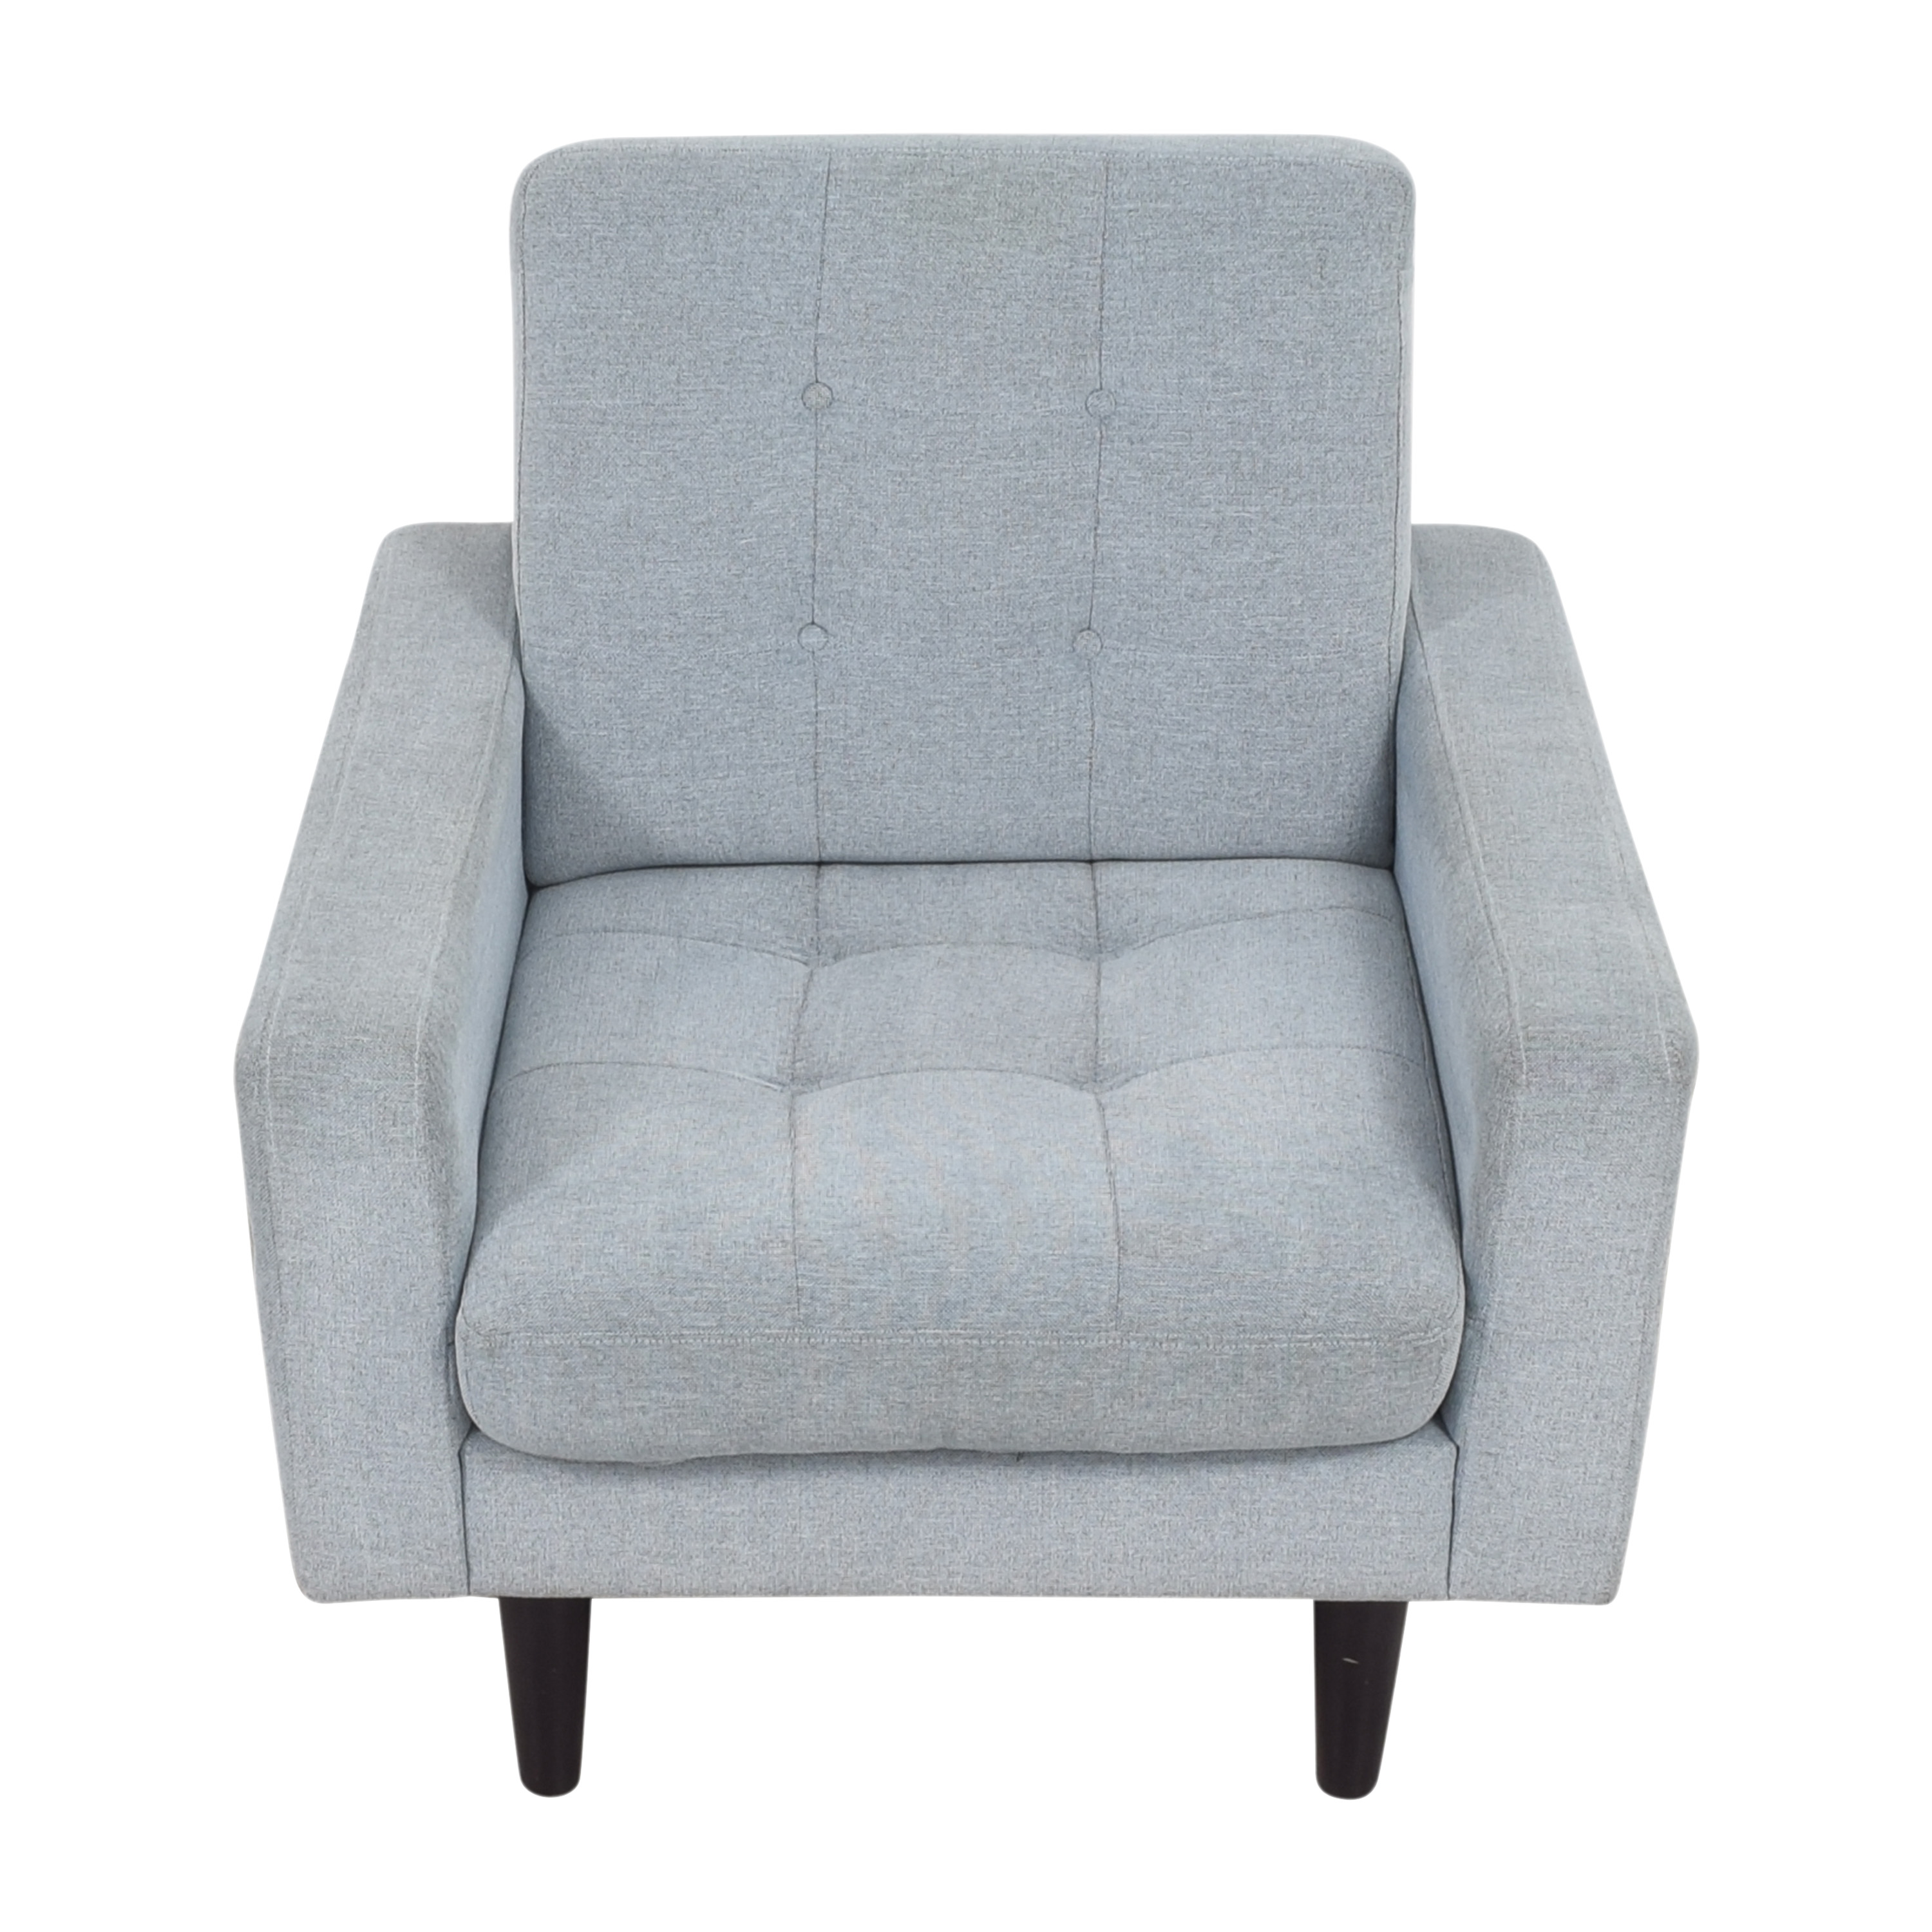 Room & Board Room & Board Tufted Accent Chair